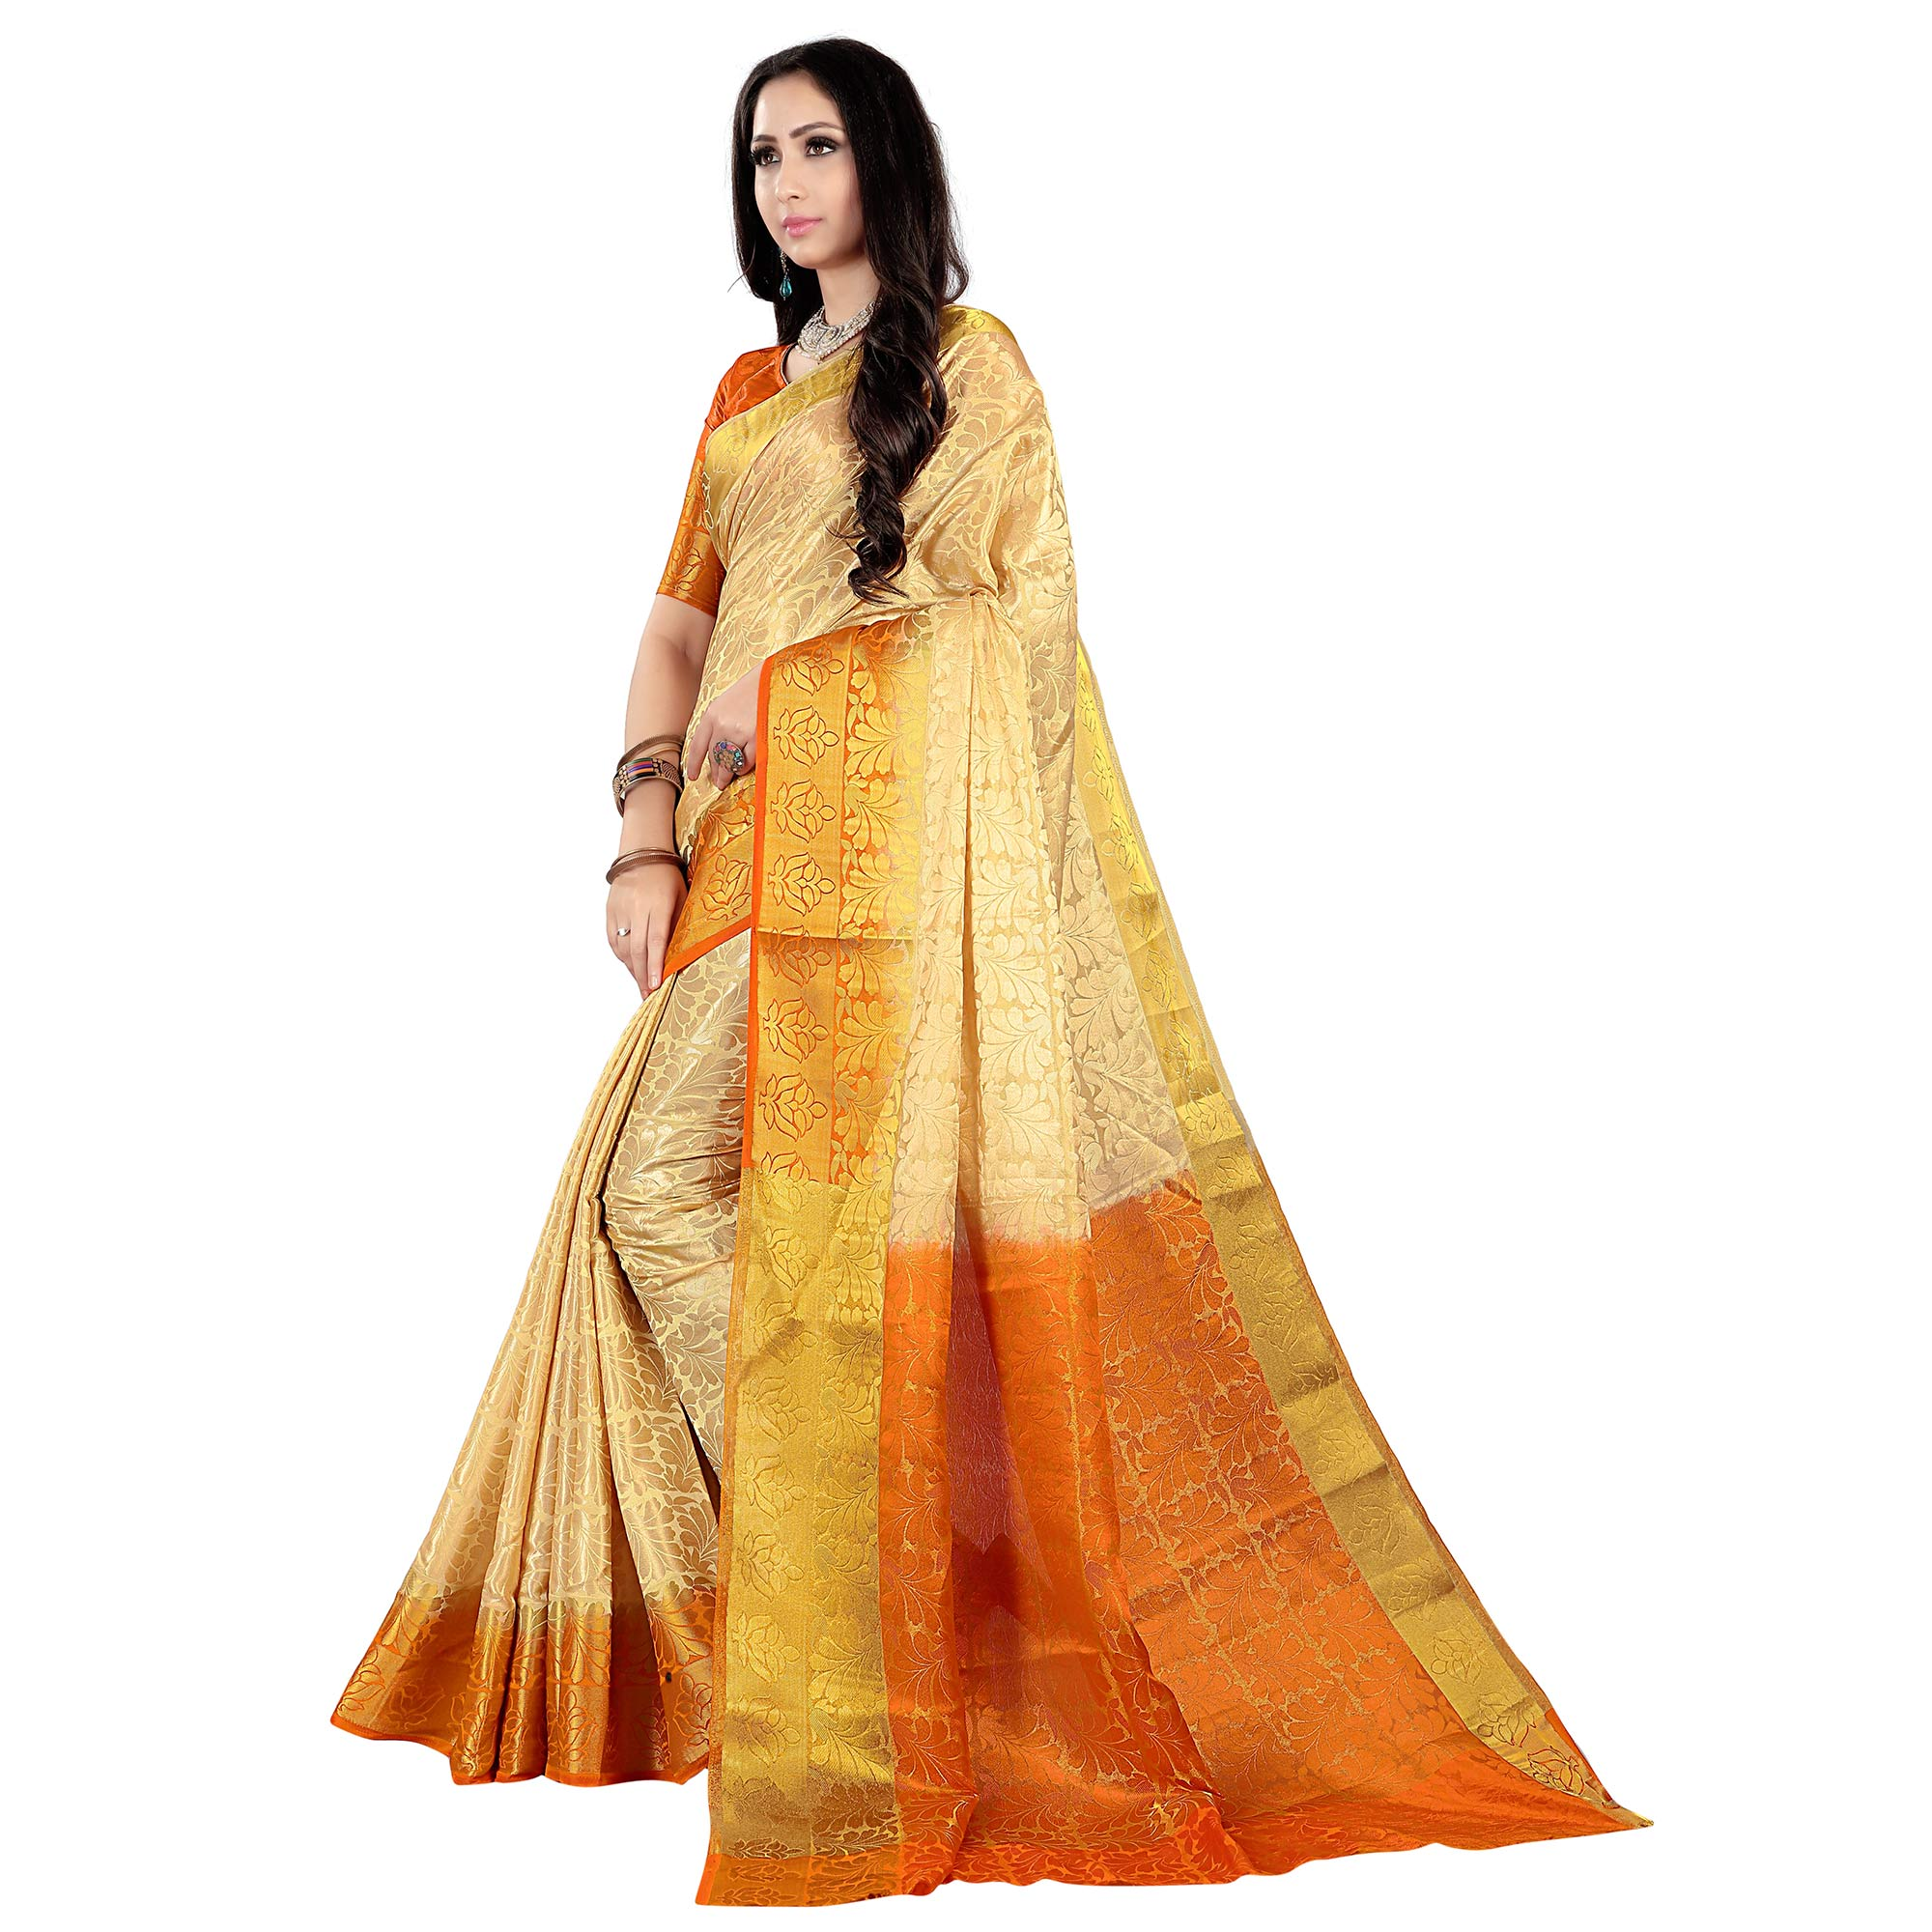 Demanding Cream-Orange Colored Kanjivaram Style Woven Silk Saree